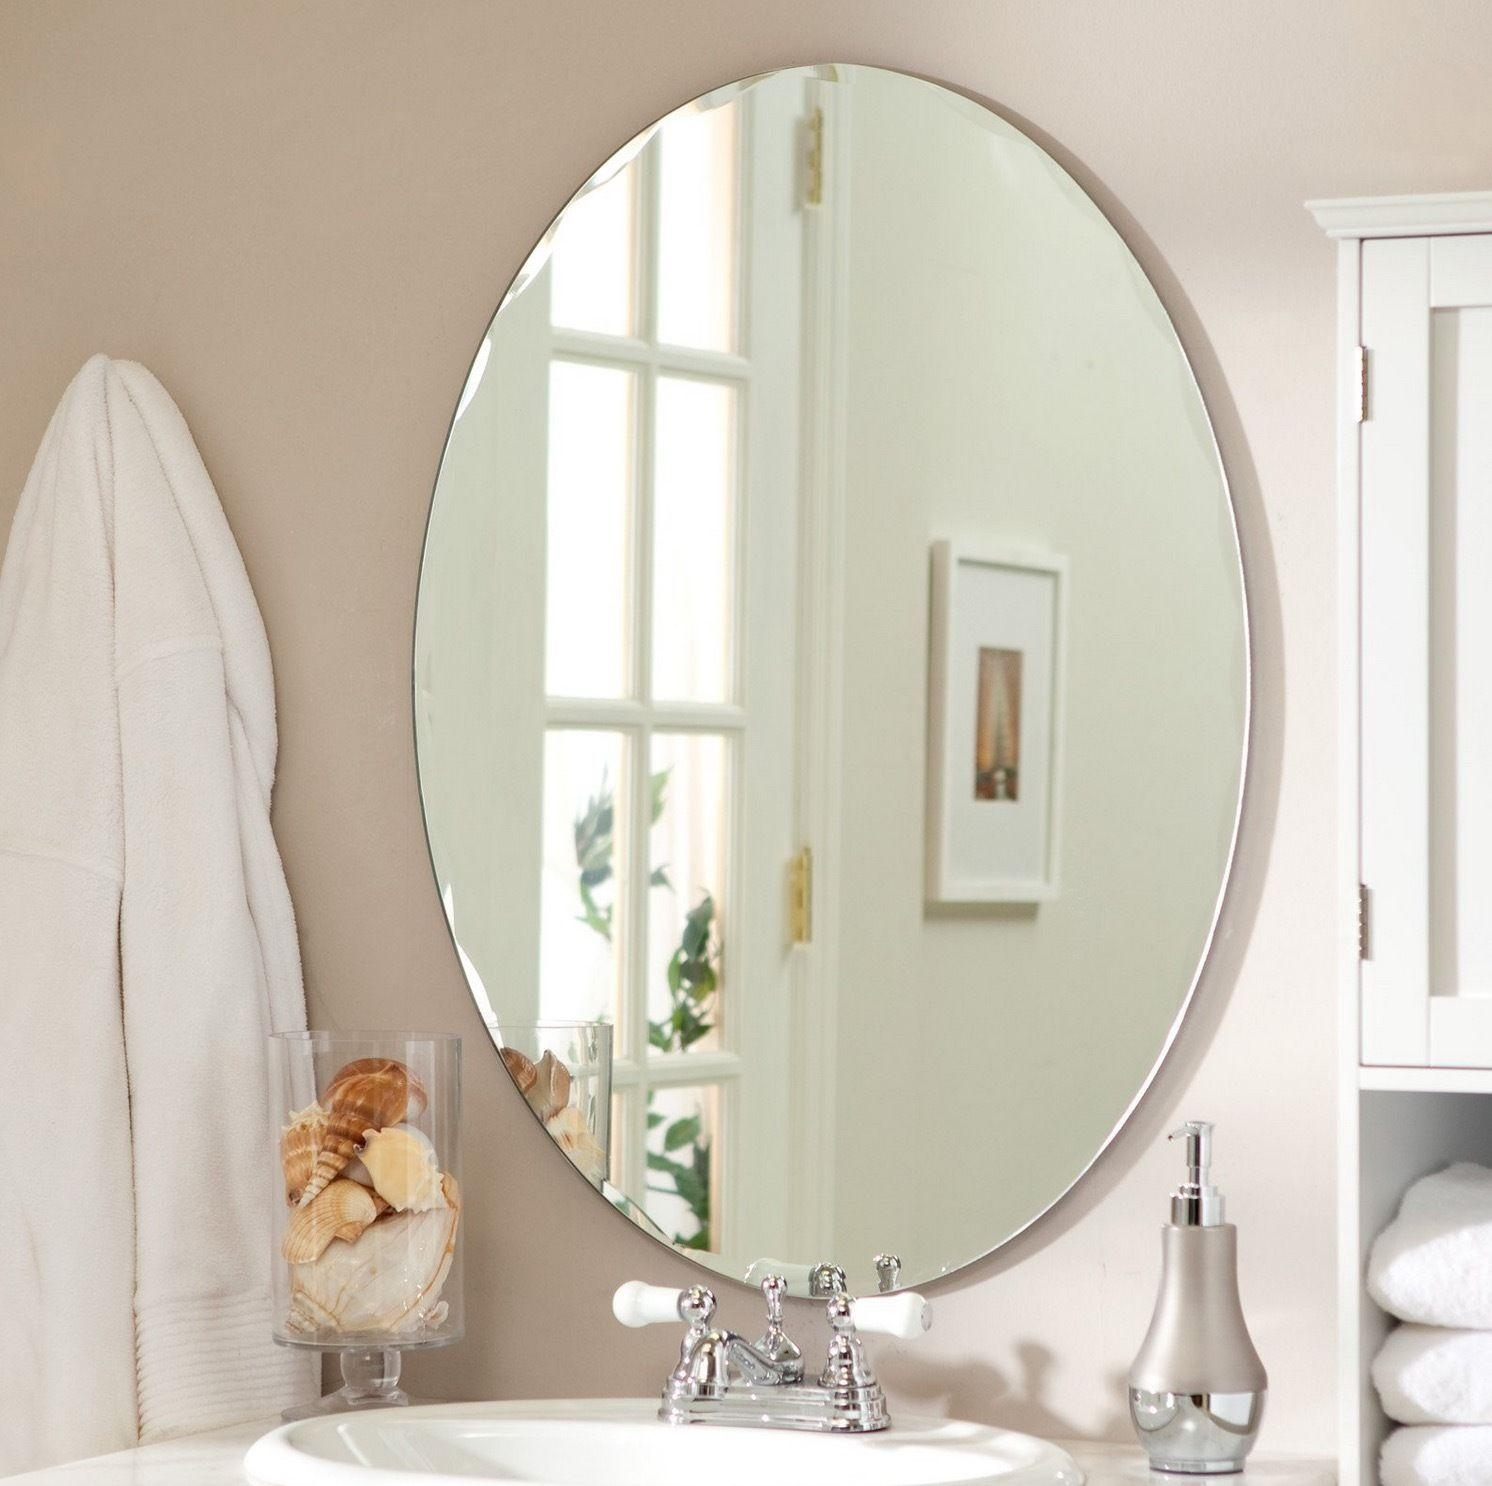 Bathroom Cabinets : Bathroom Wall Mirror Oval Beveled Vanity With Frameless Beveled Bathroom Mirrors (Image 2 of 20)